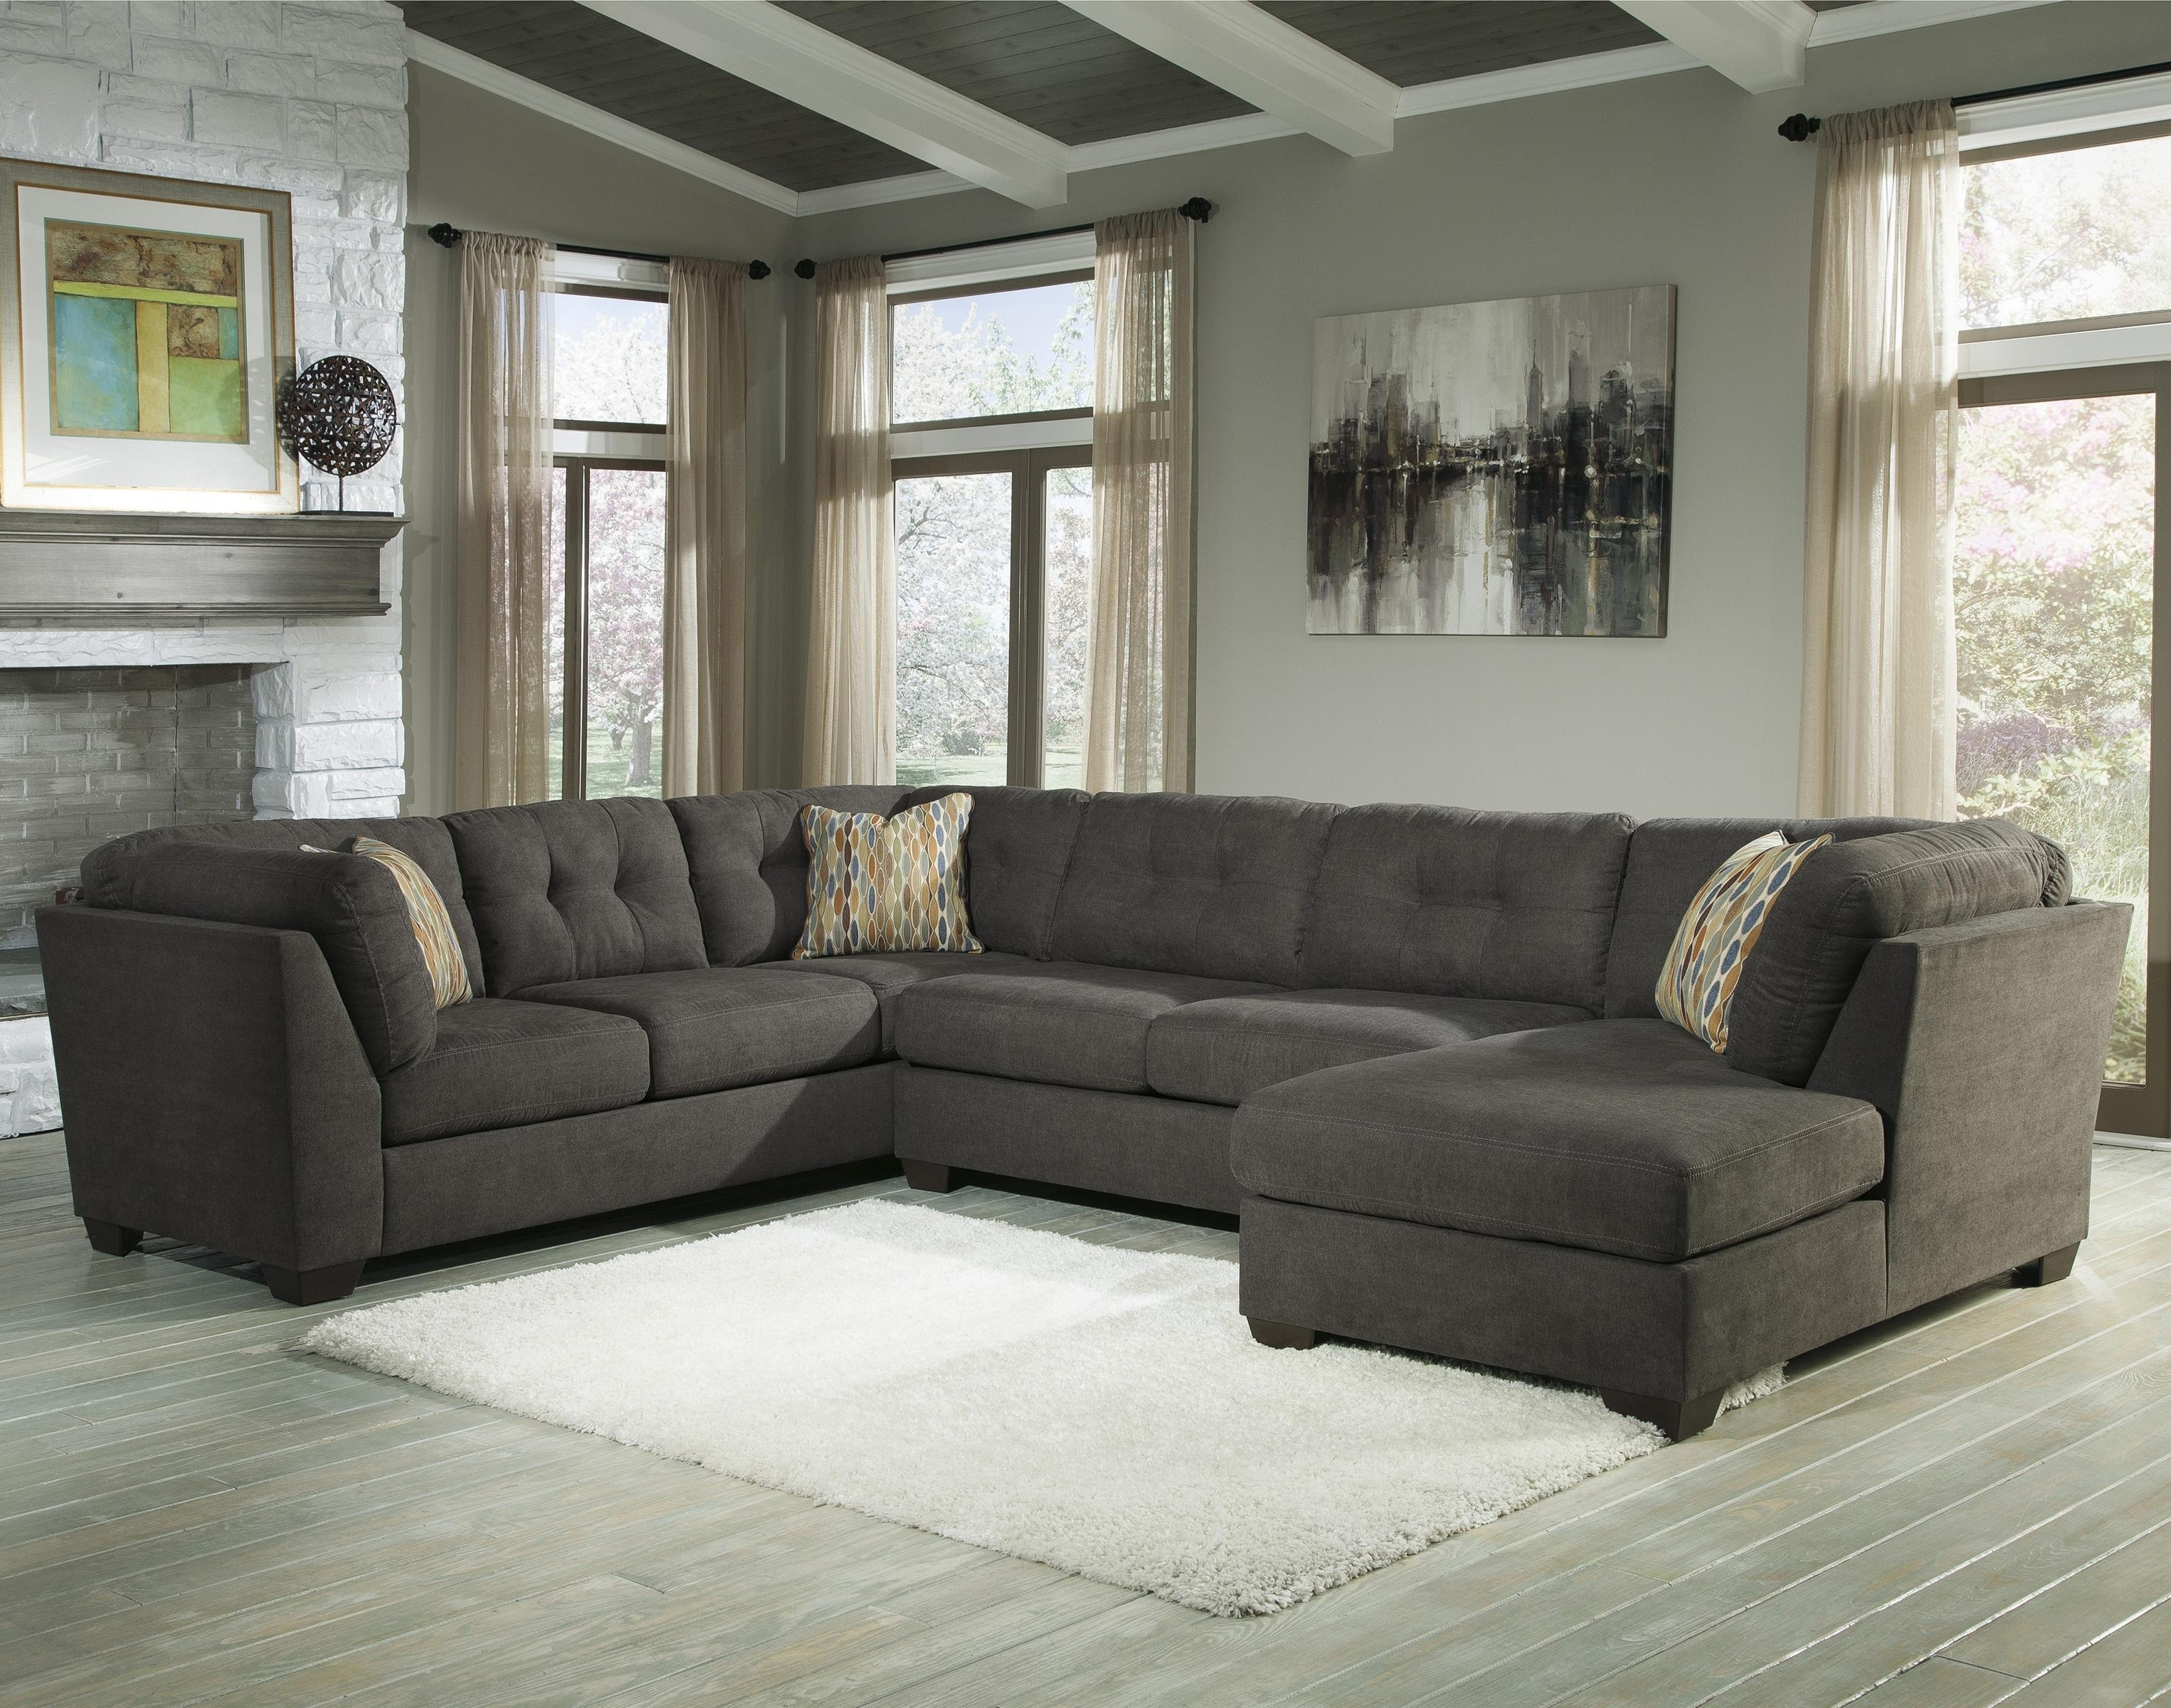 Sectional Sofas Jackson Ms • Sectional Sofa with regard to Jackson Tn Sectional Sofas (Image 7 of 10)